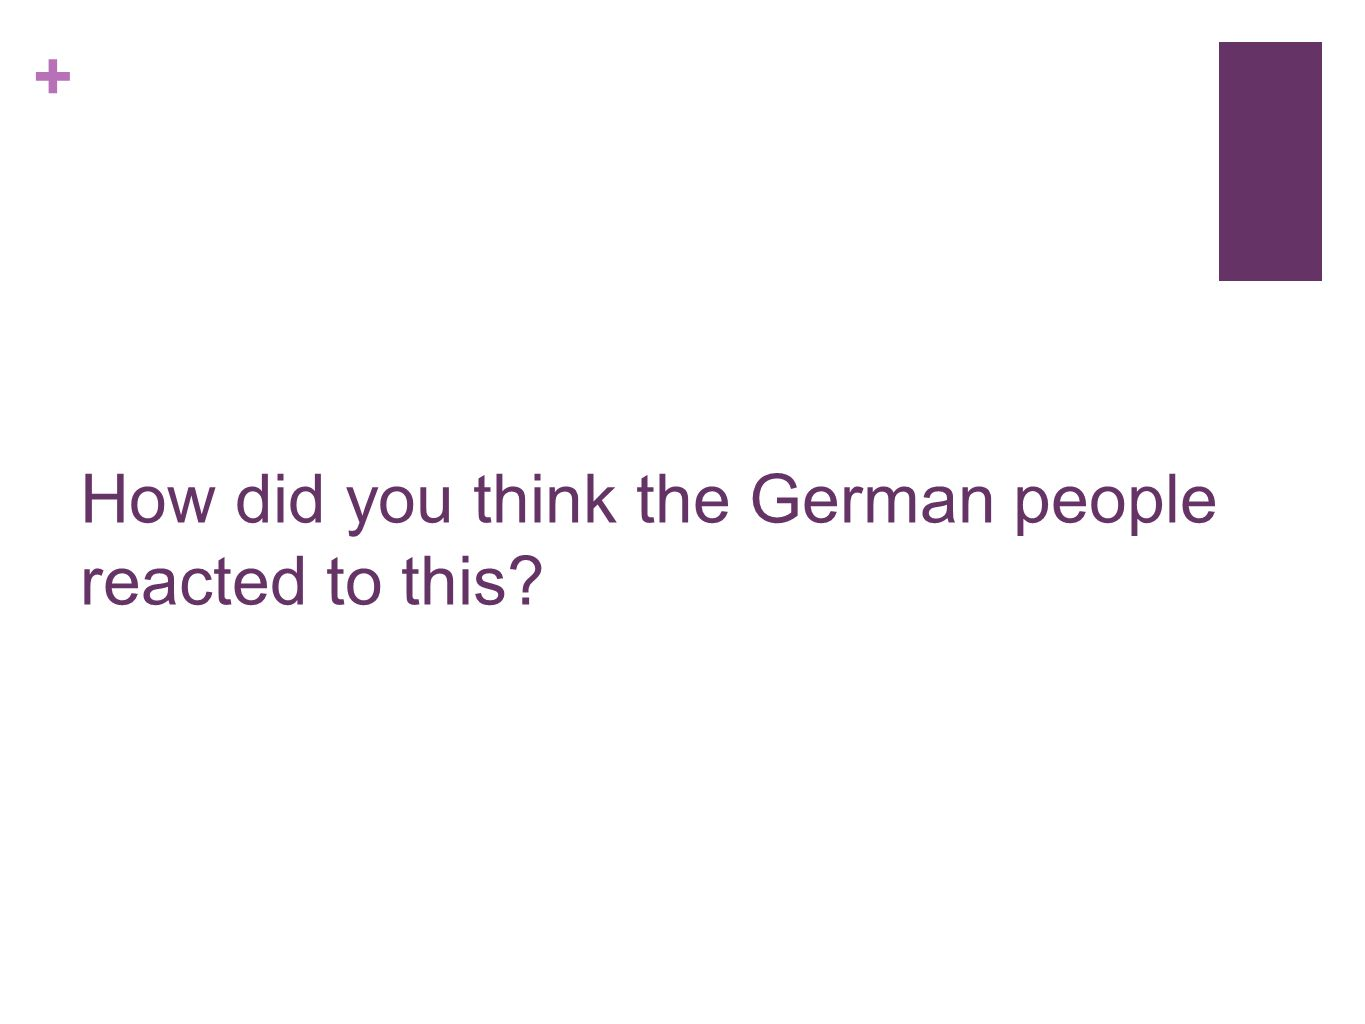 How did you think the German people reacted to this